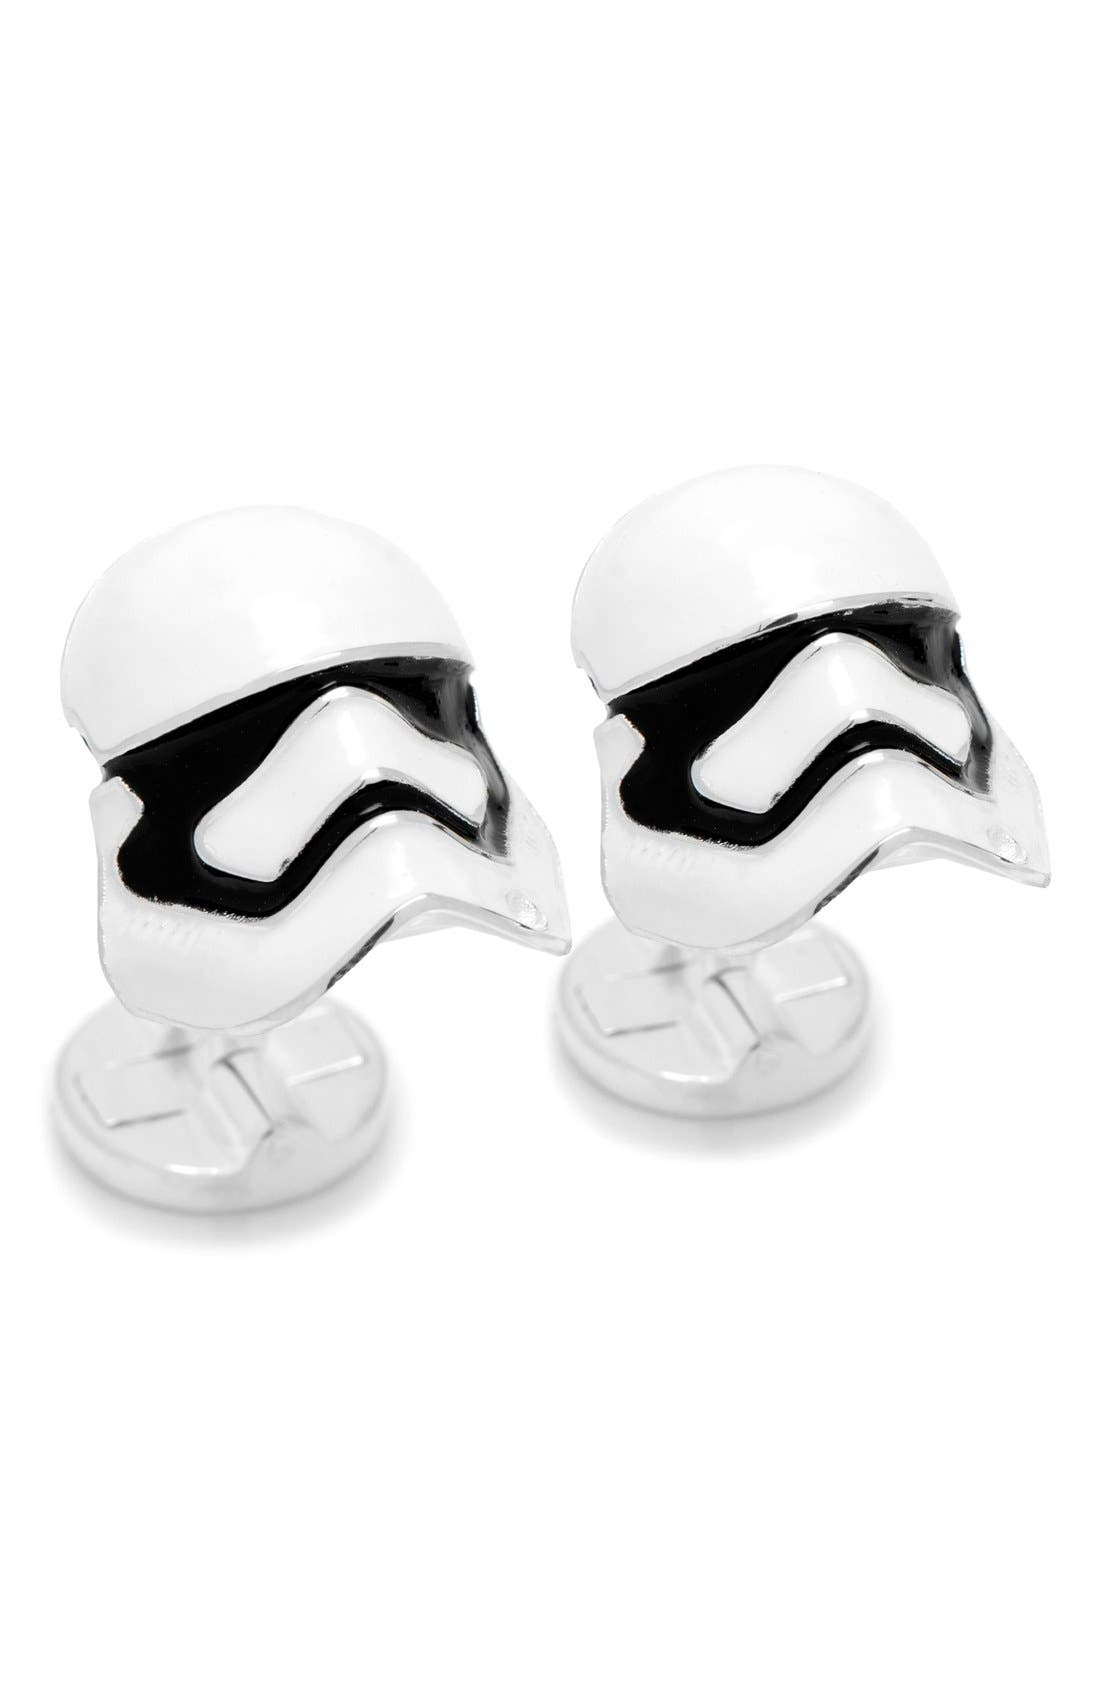 Star Wars Stormtrooper Cuff Links,                         Main,                         color, White